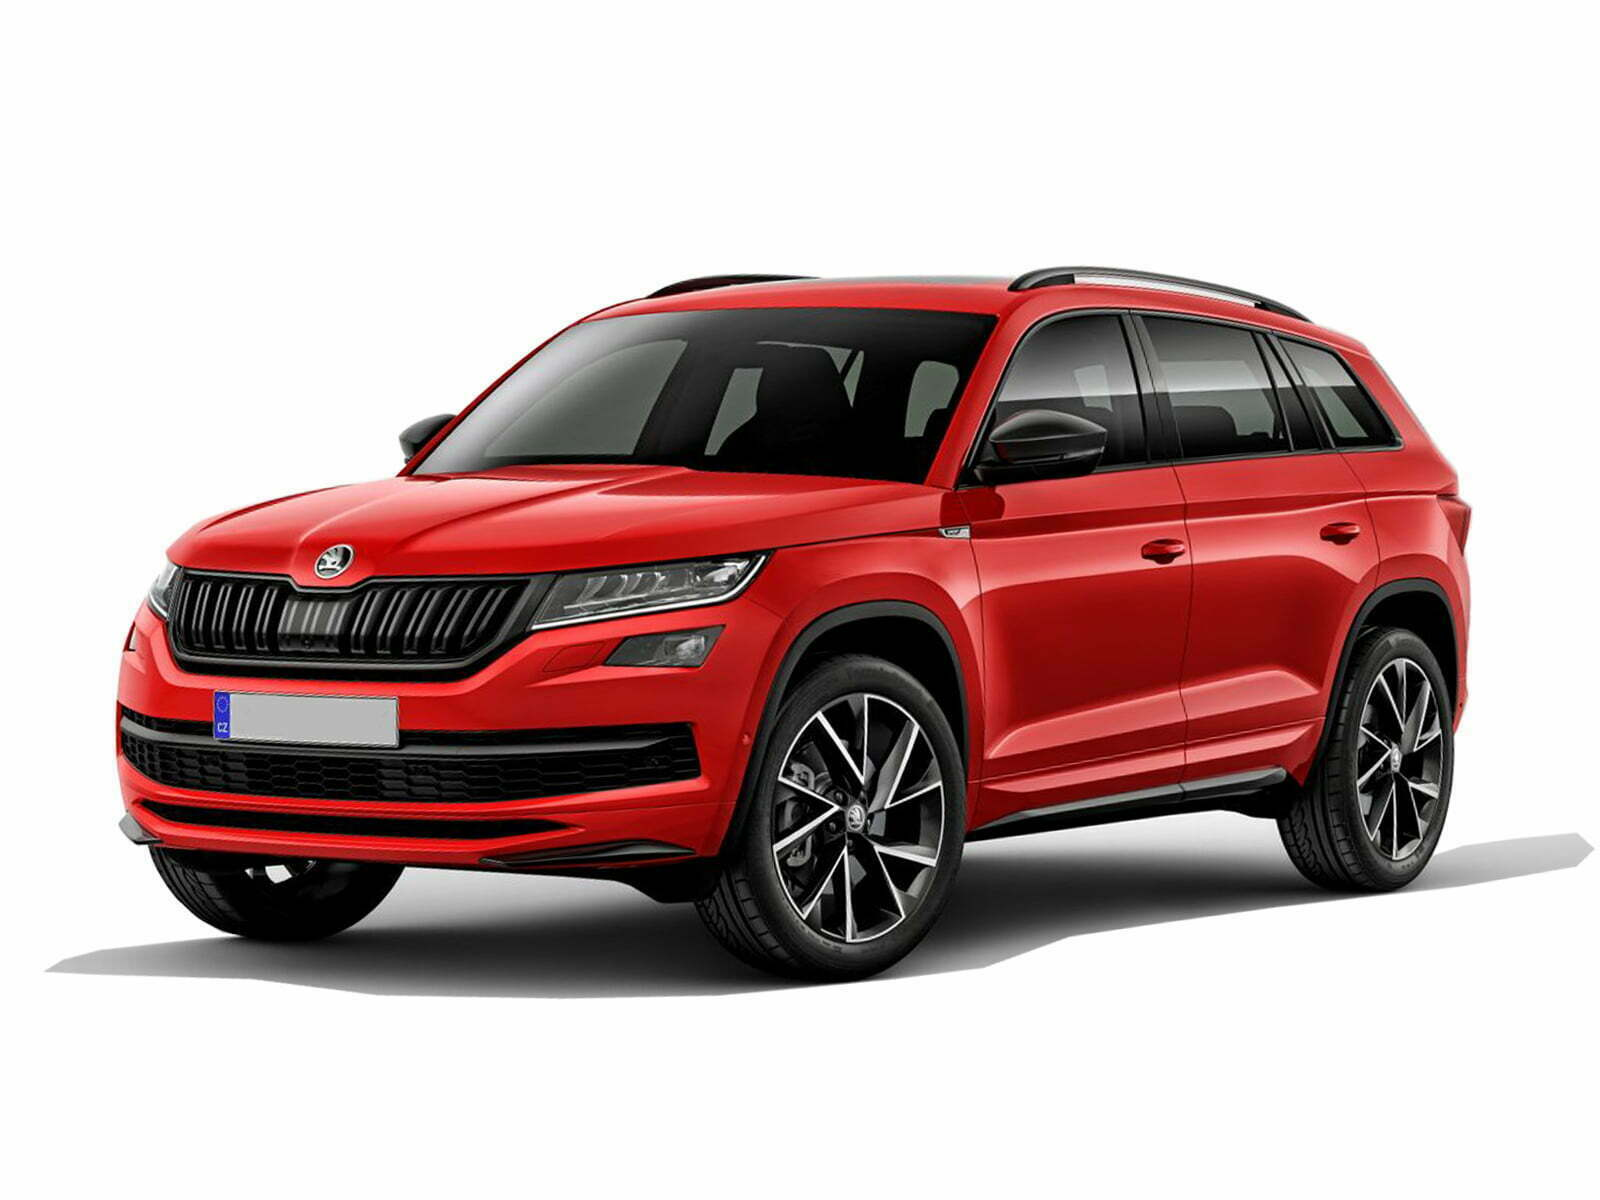 Skoda Kodiaq 1.5 TSI 110kW/150pk ACT DSG Business Edition 5d.